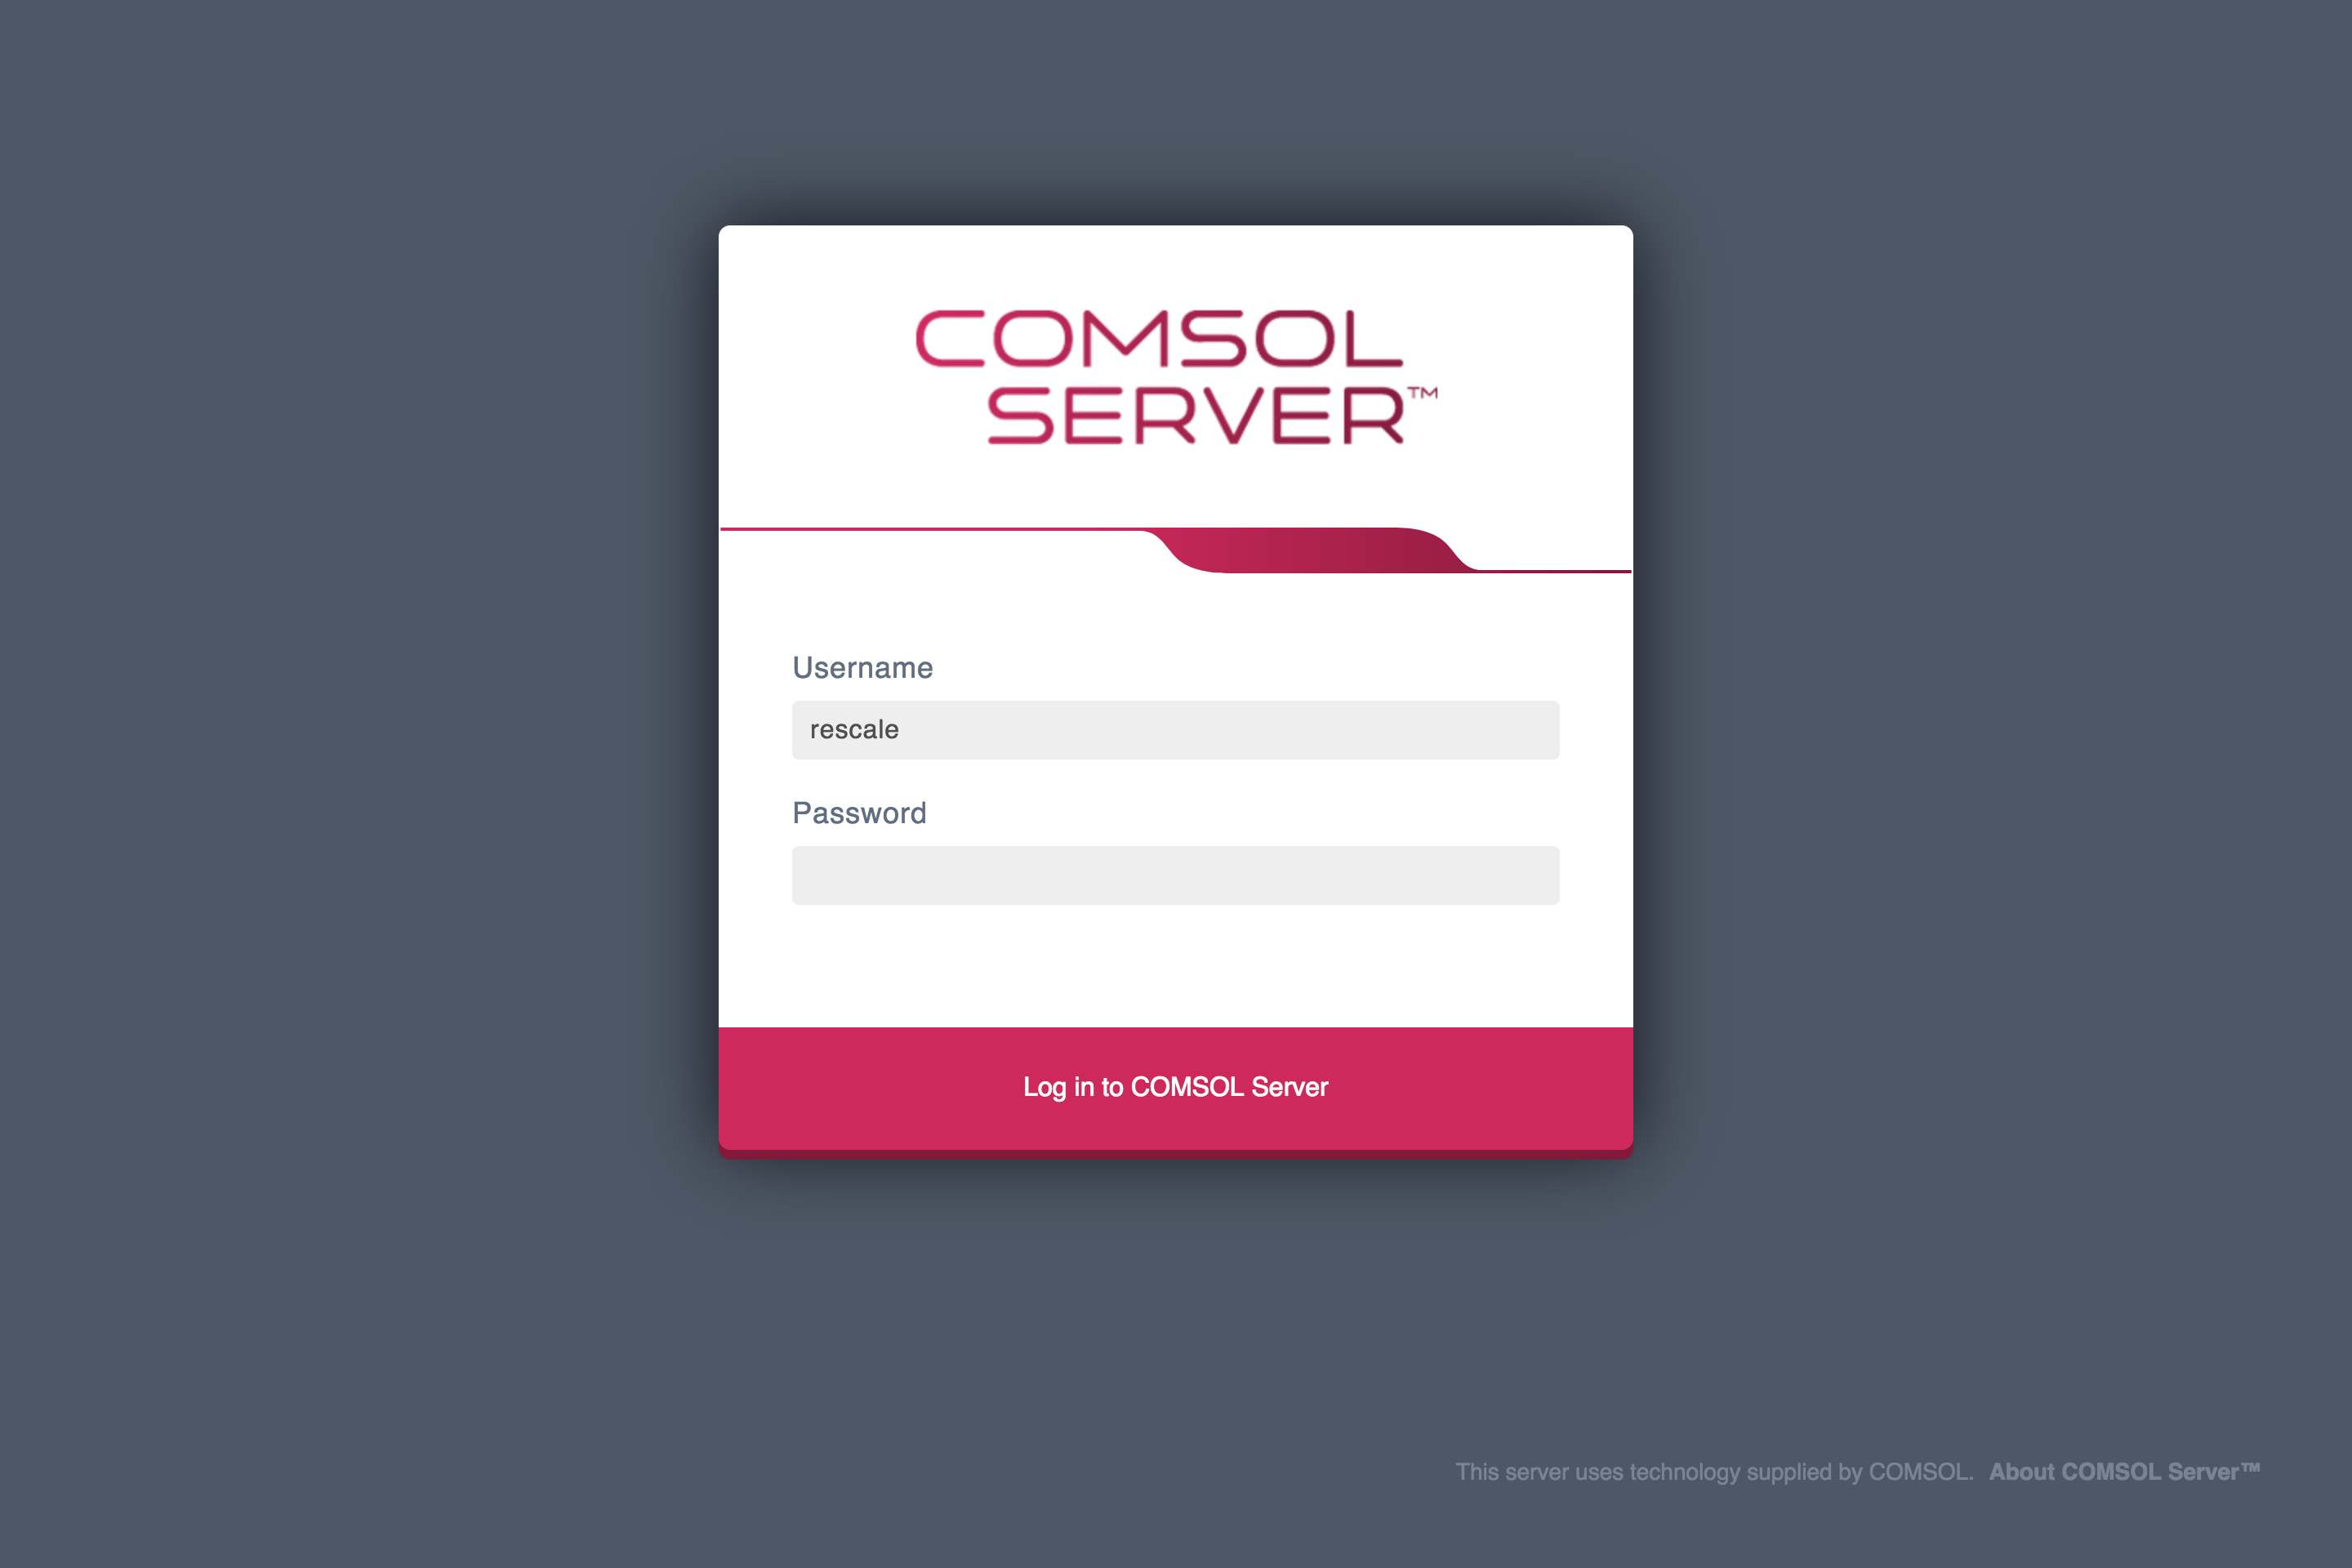 COMSOL Server Login